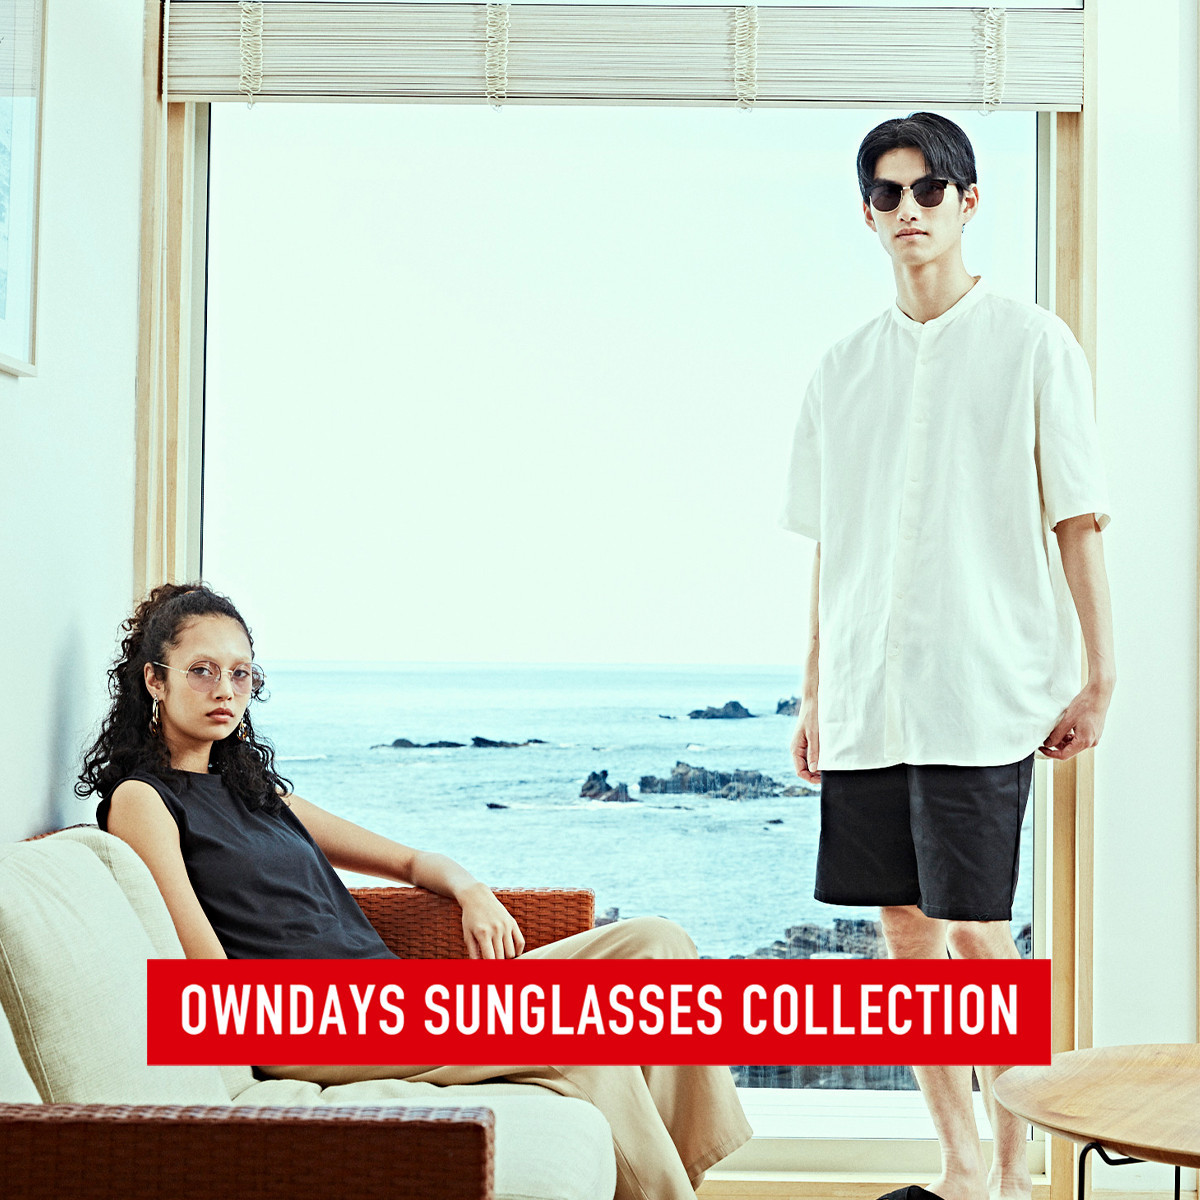 OWNDAYS SUNGLASSES COLLECTION 2021